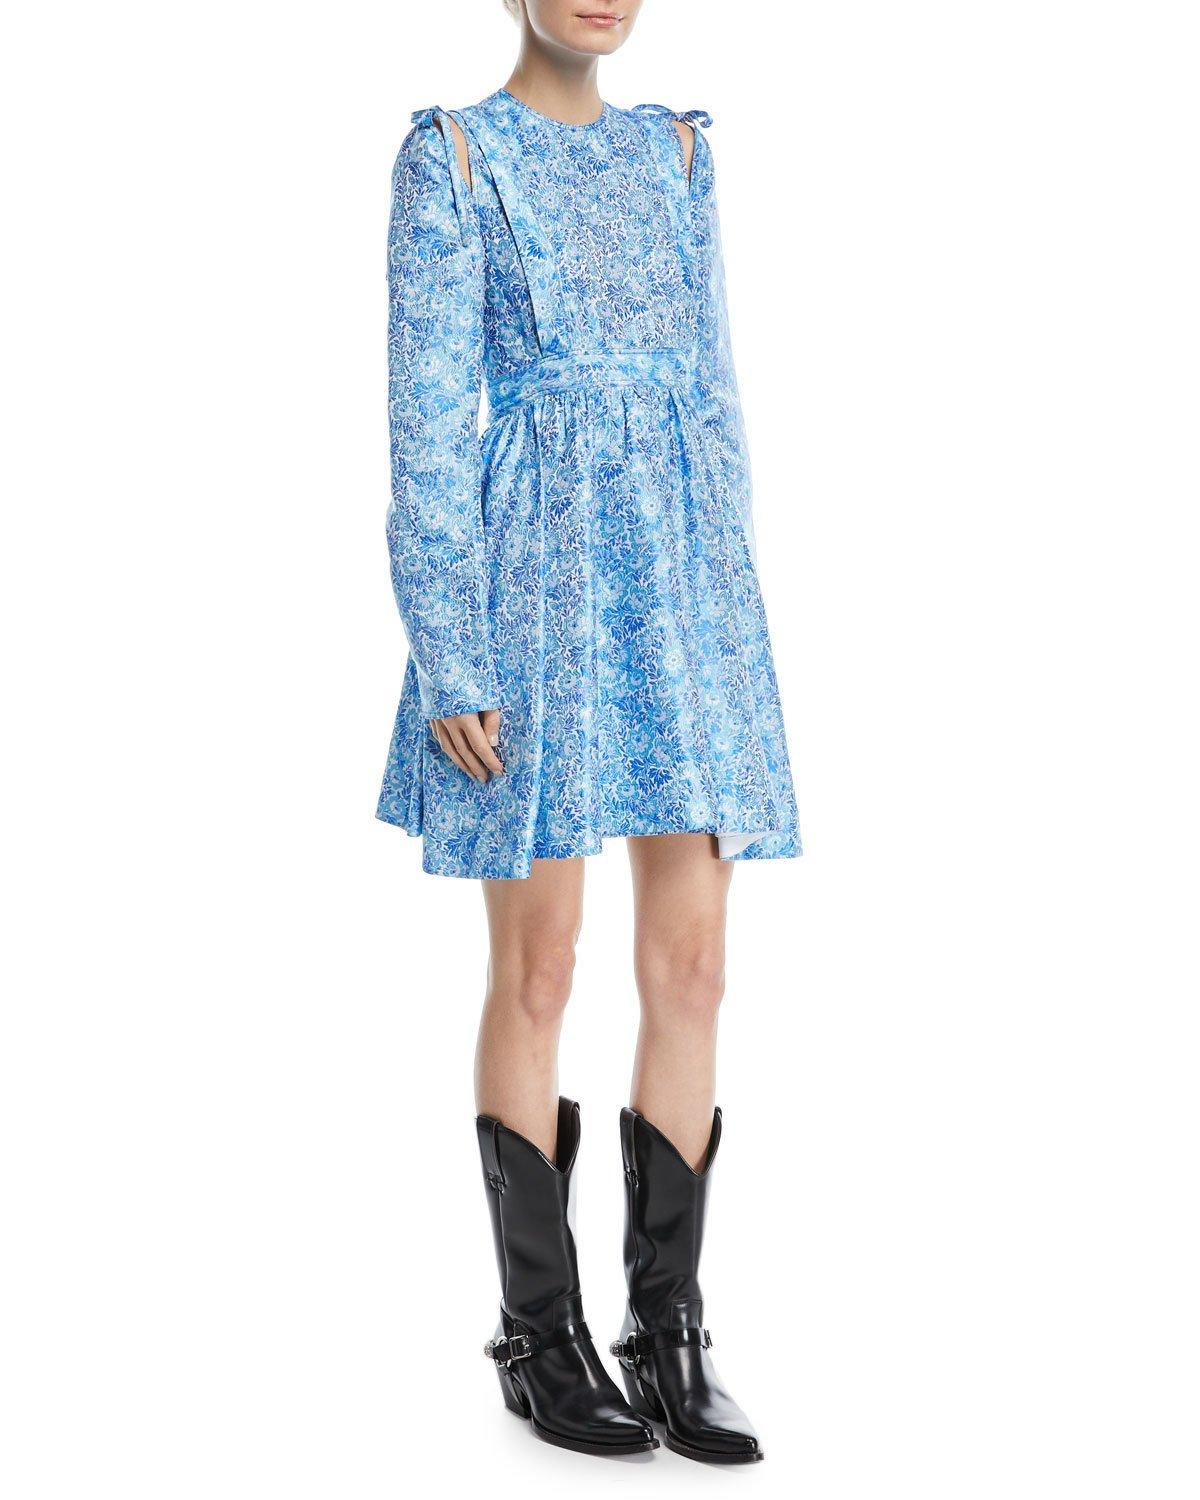 968083dd126 Calvin Klein 205W39Nyc Cold-Shoulder With Bow Floral-Jacquard Cocktail Dress  In Blue